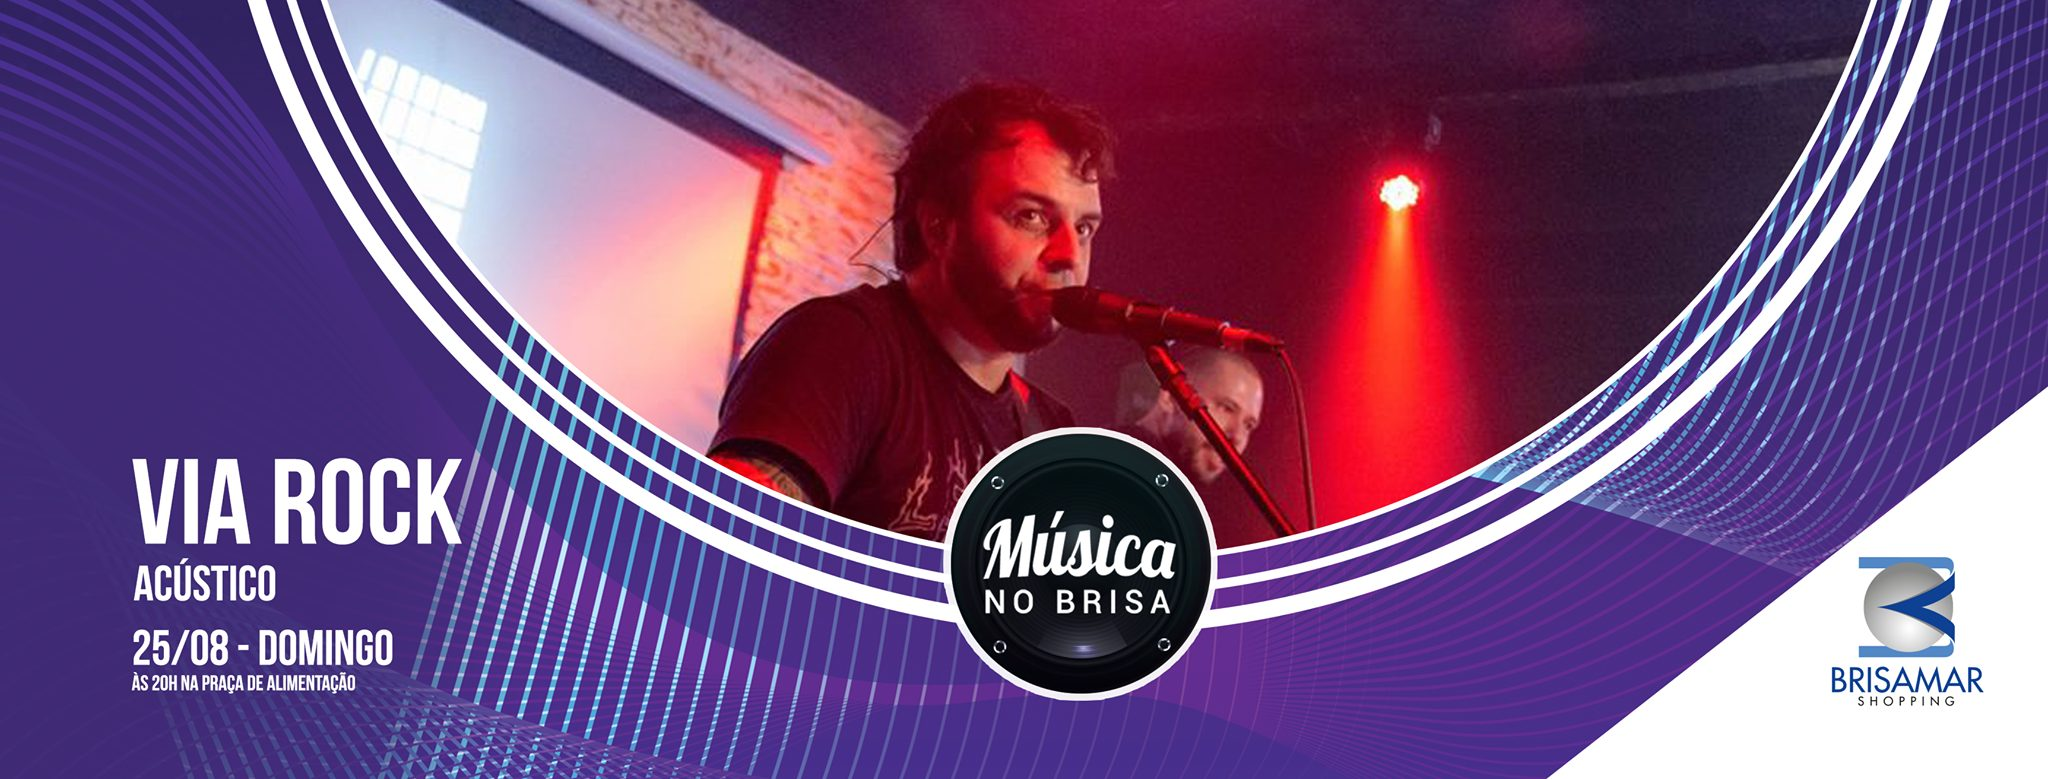 Show da banda Via Rock no próximo domingo